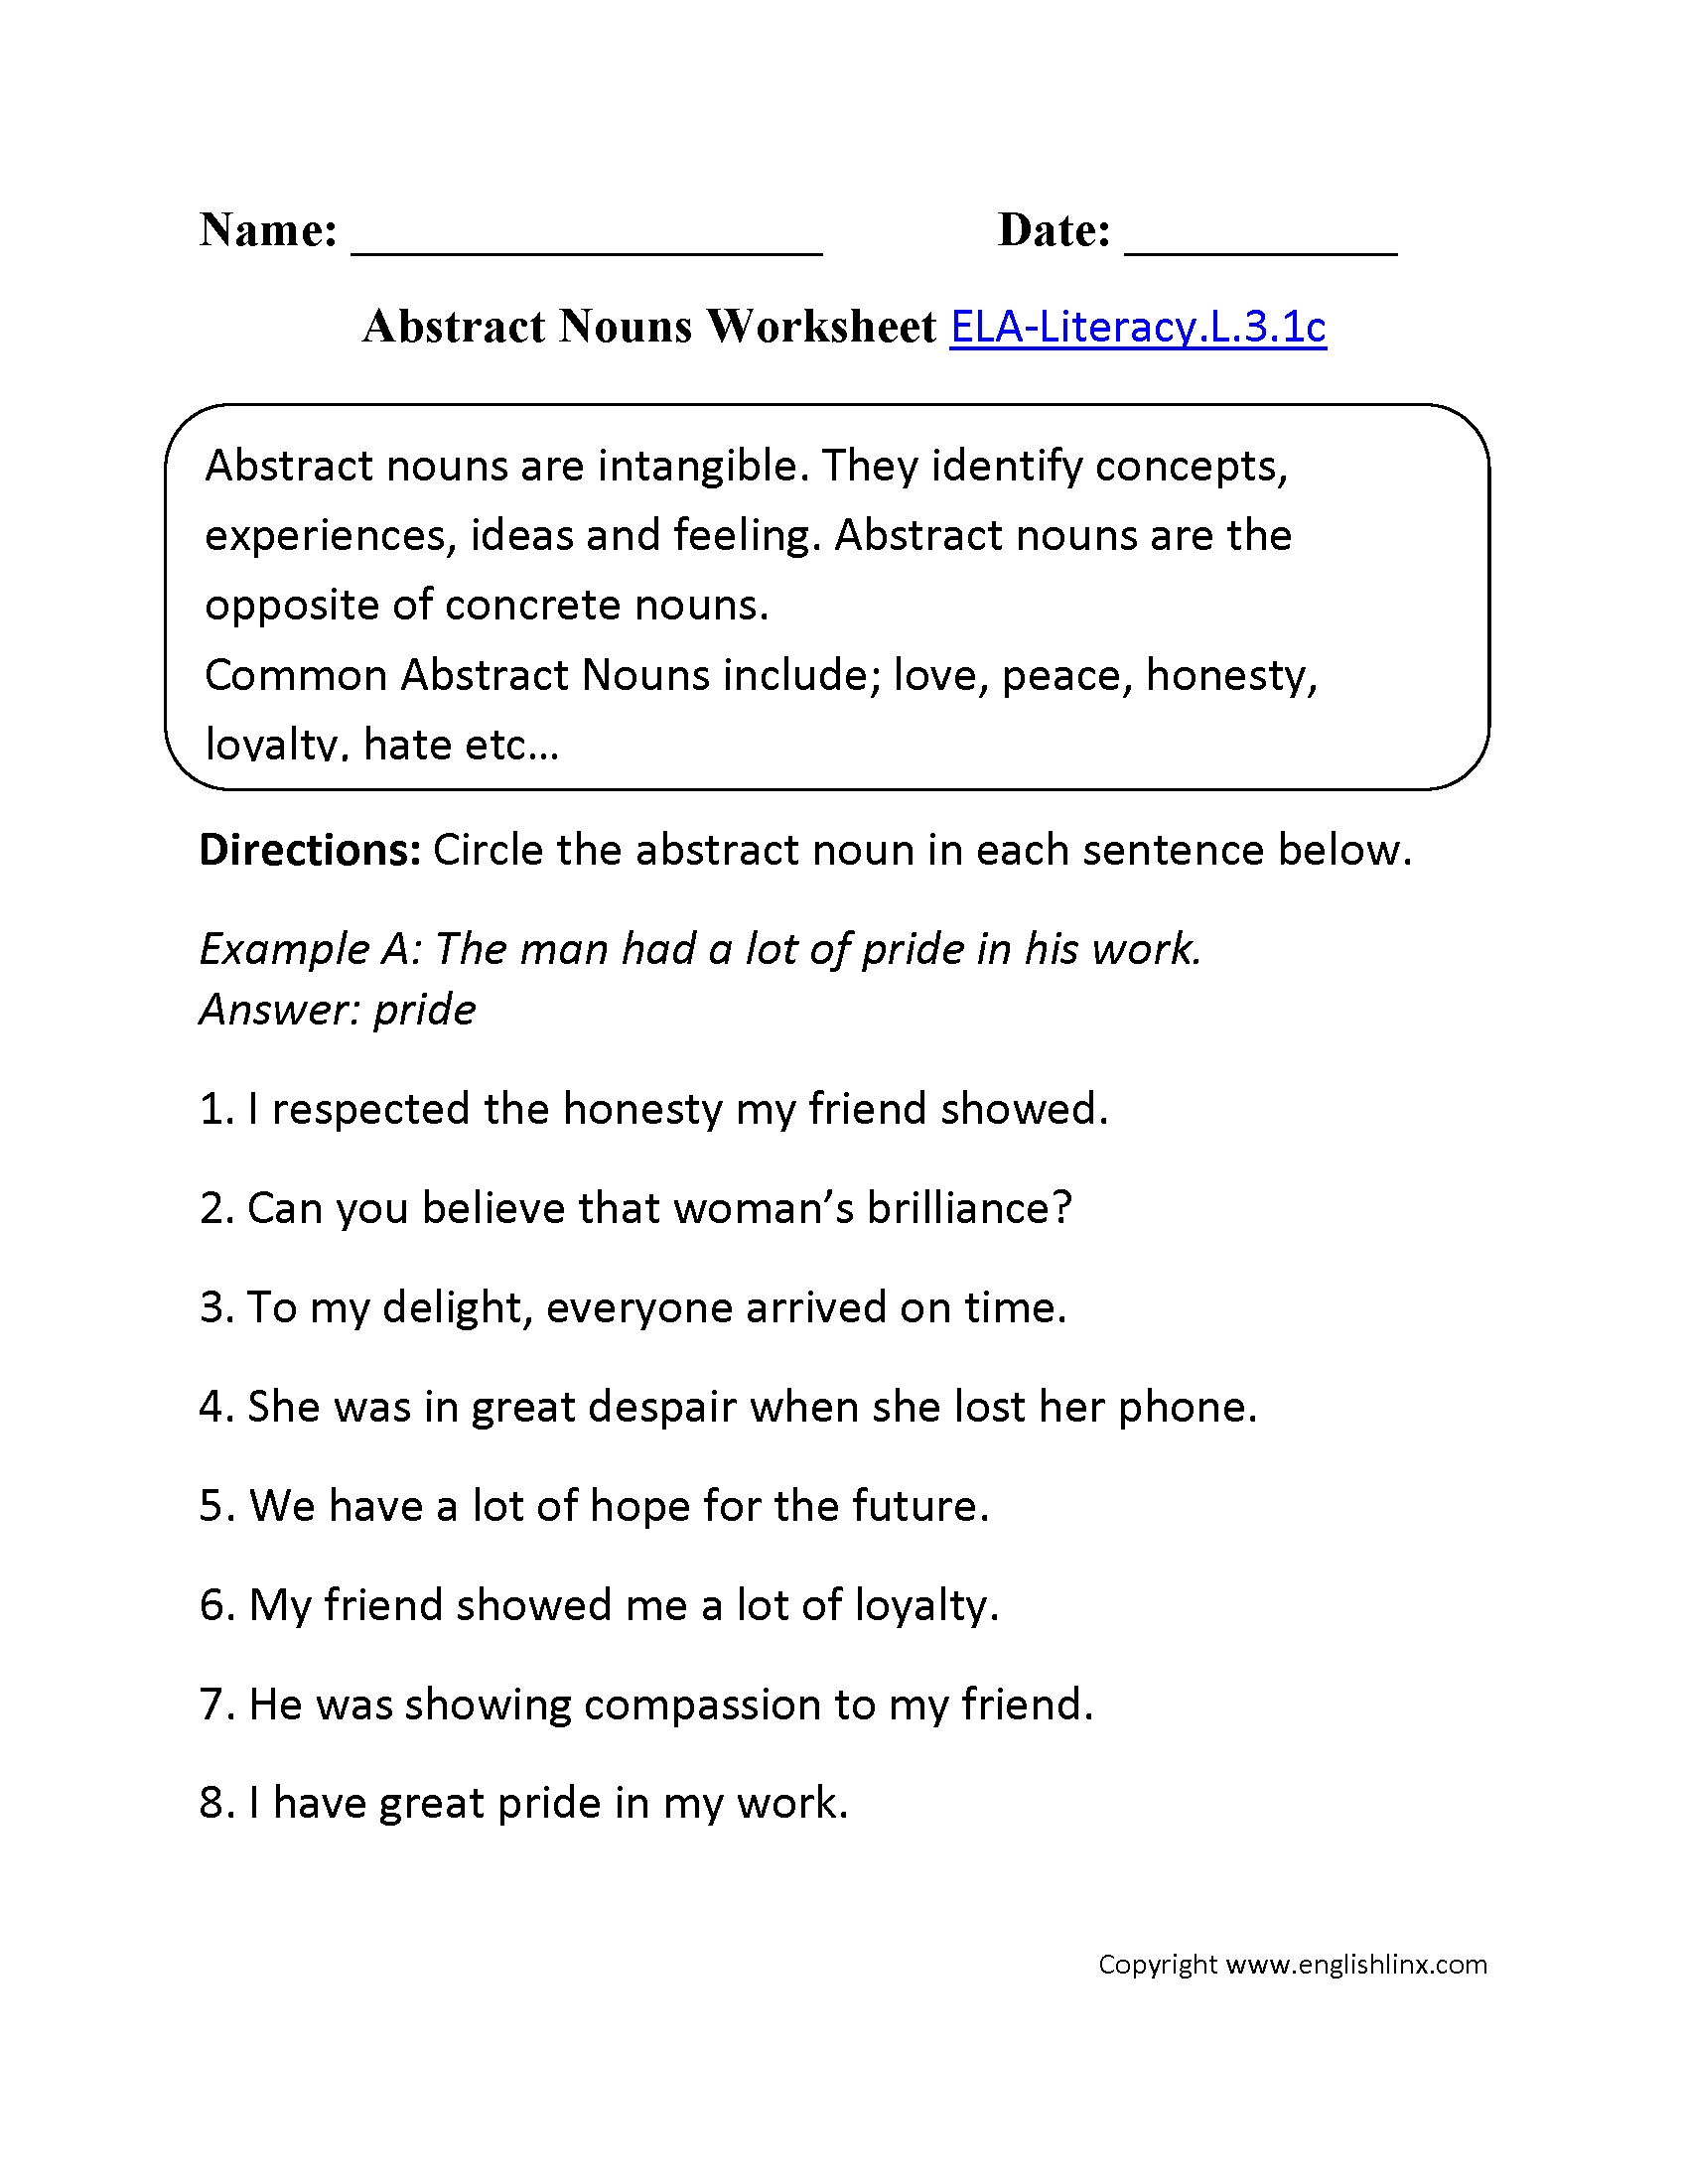 worksheet Fourth Grade Language Arts Worksheets 3rd grade common core language worksheets abstract nouns worksheet 1 ela literacy l 3 1c worksheet